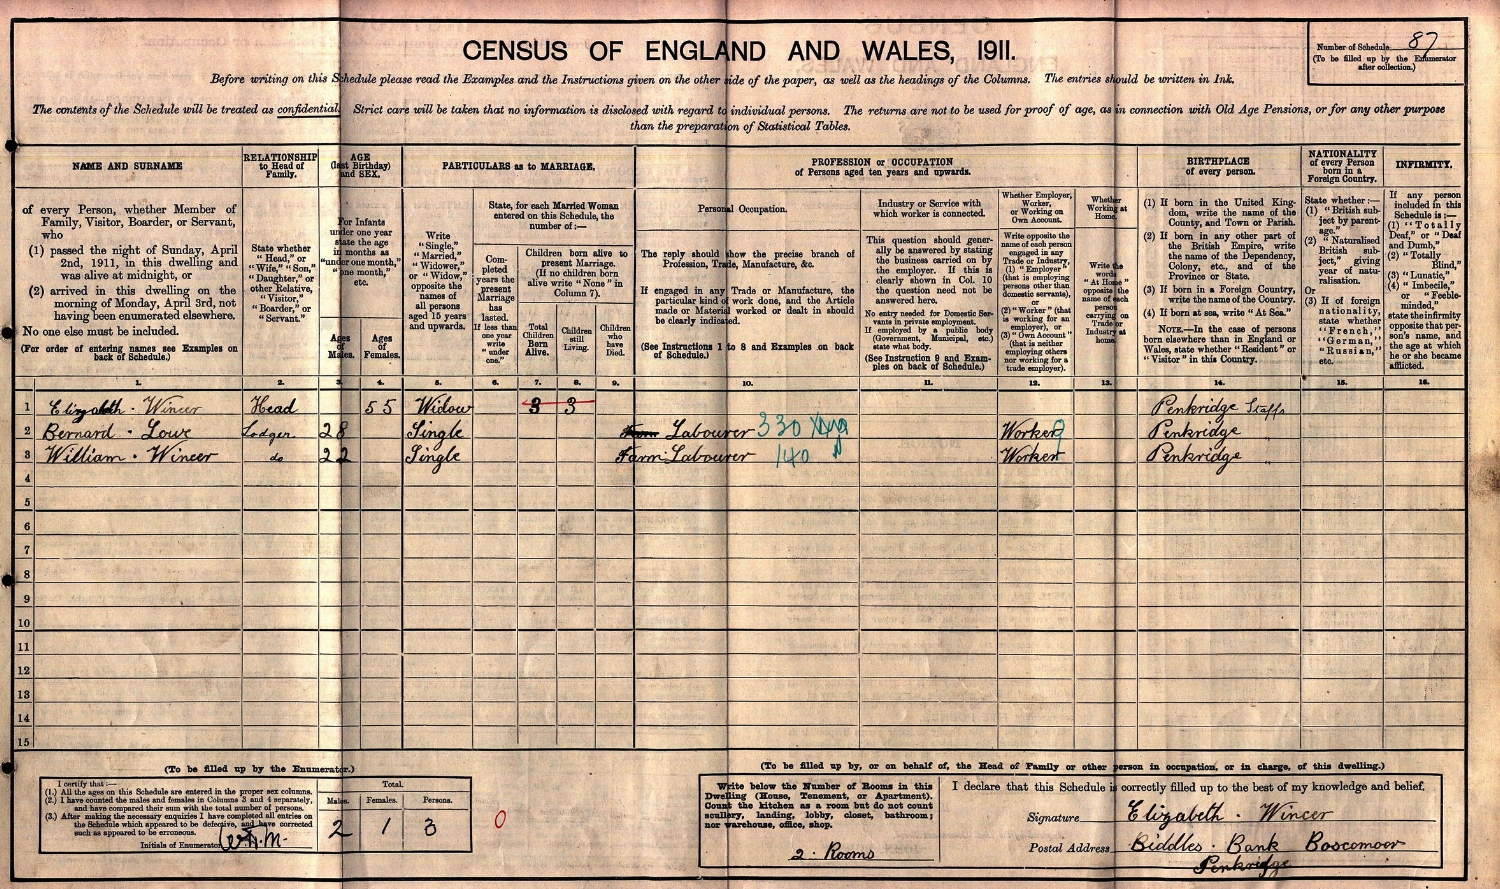 Extract from the 1911 census for Elizabeth Wincer